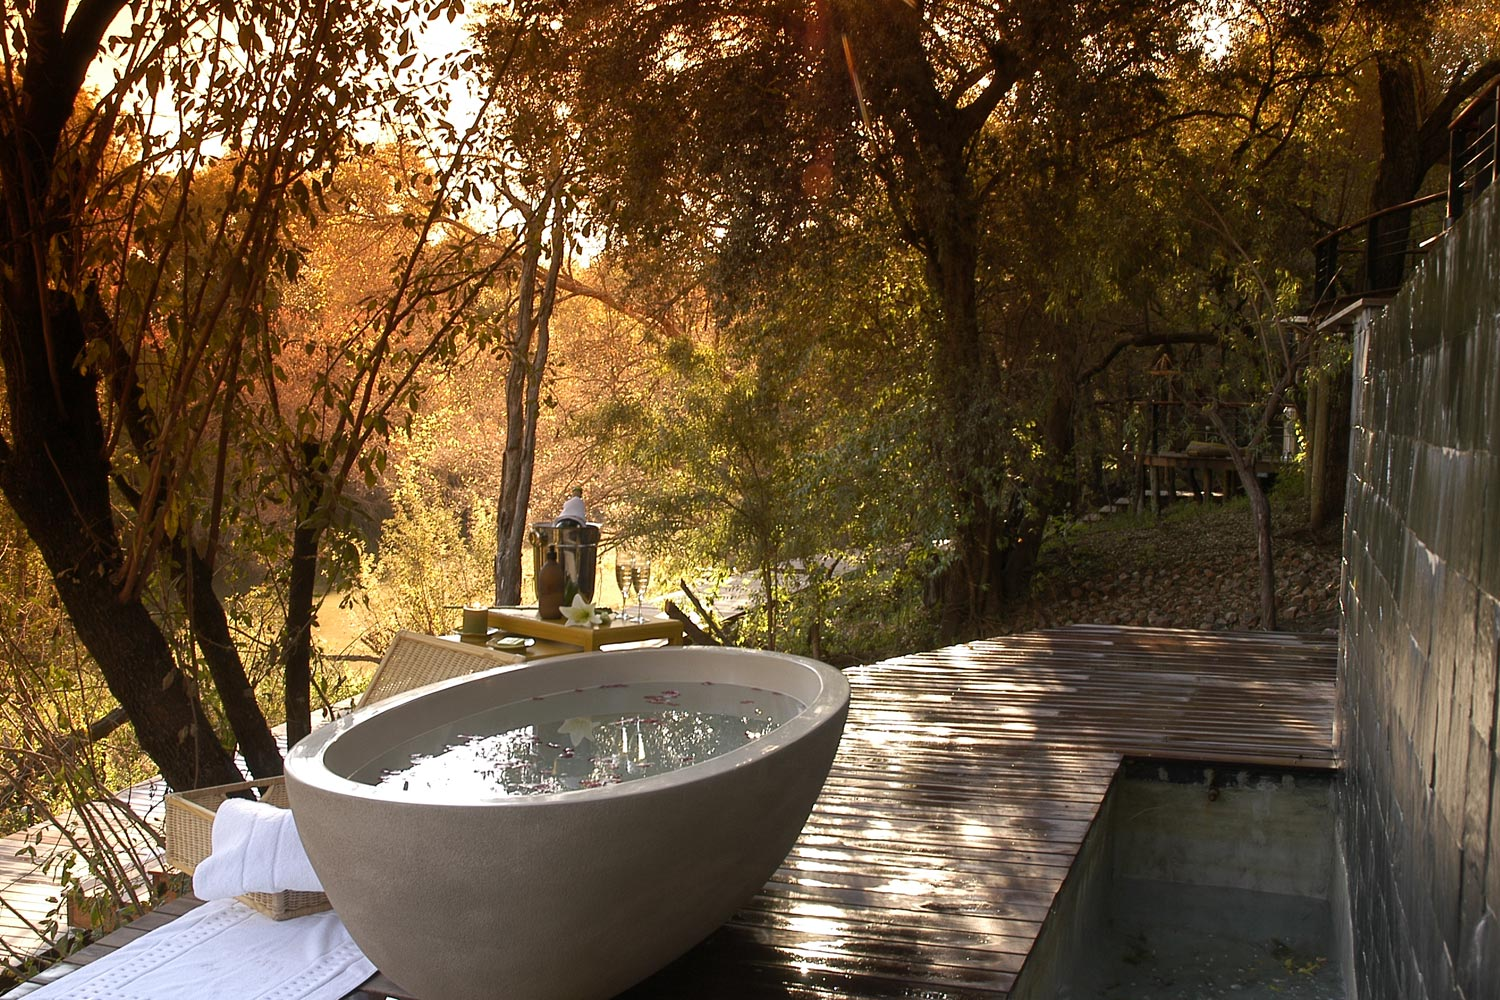 Planning a safari for January? Don't miss these amazing luxury properties in South Africa  https://t.co/RpZsVozgrS https://t.co/JI0QYFVkSf